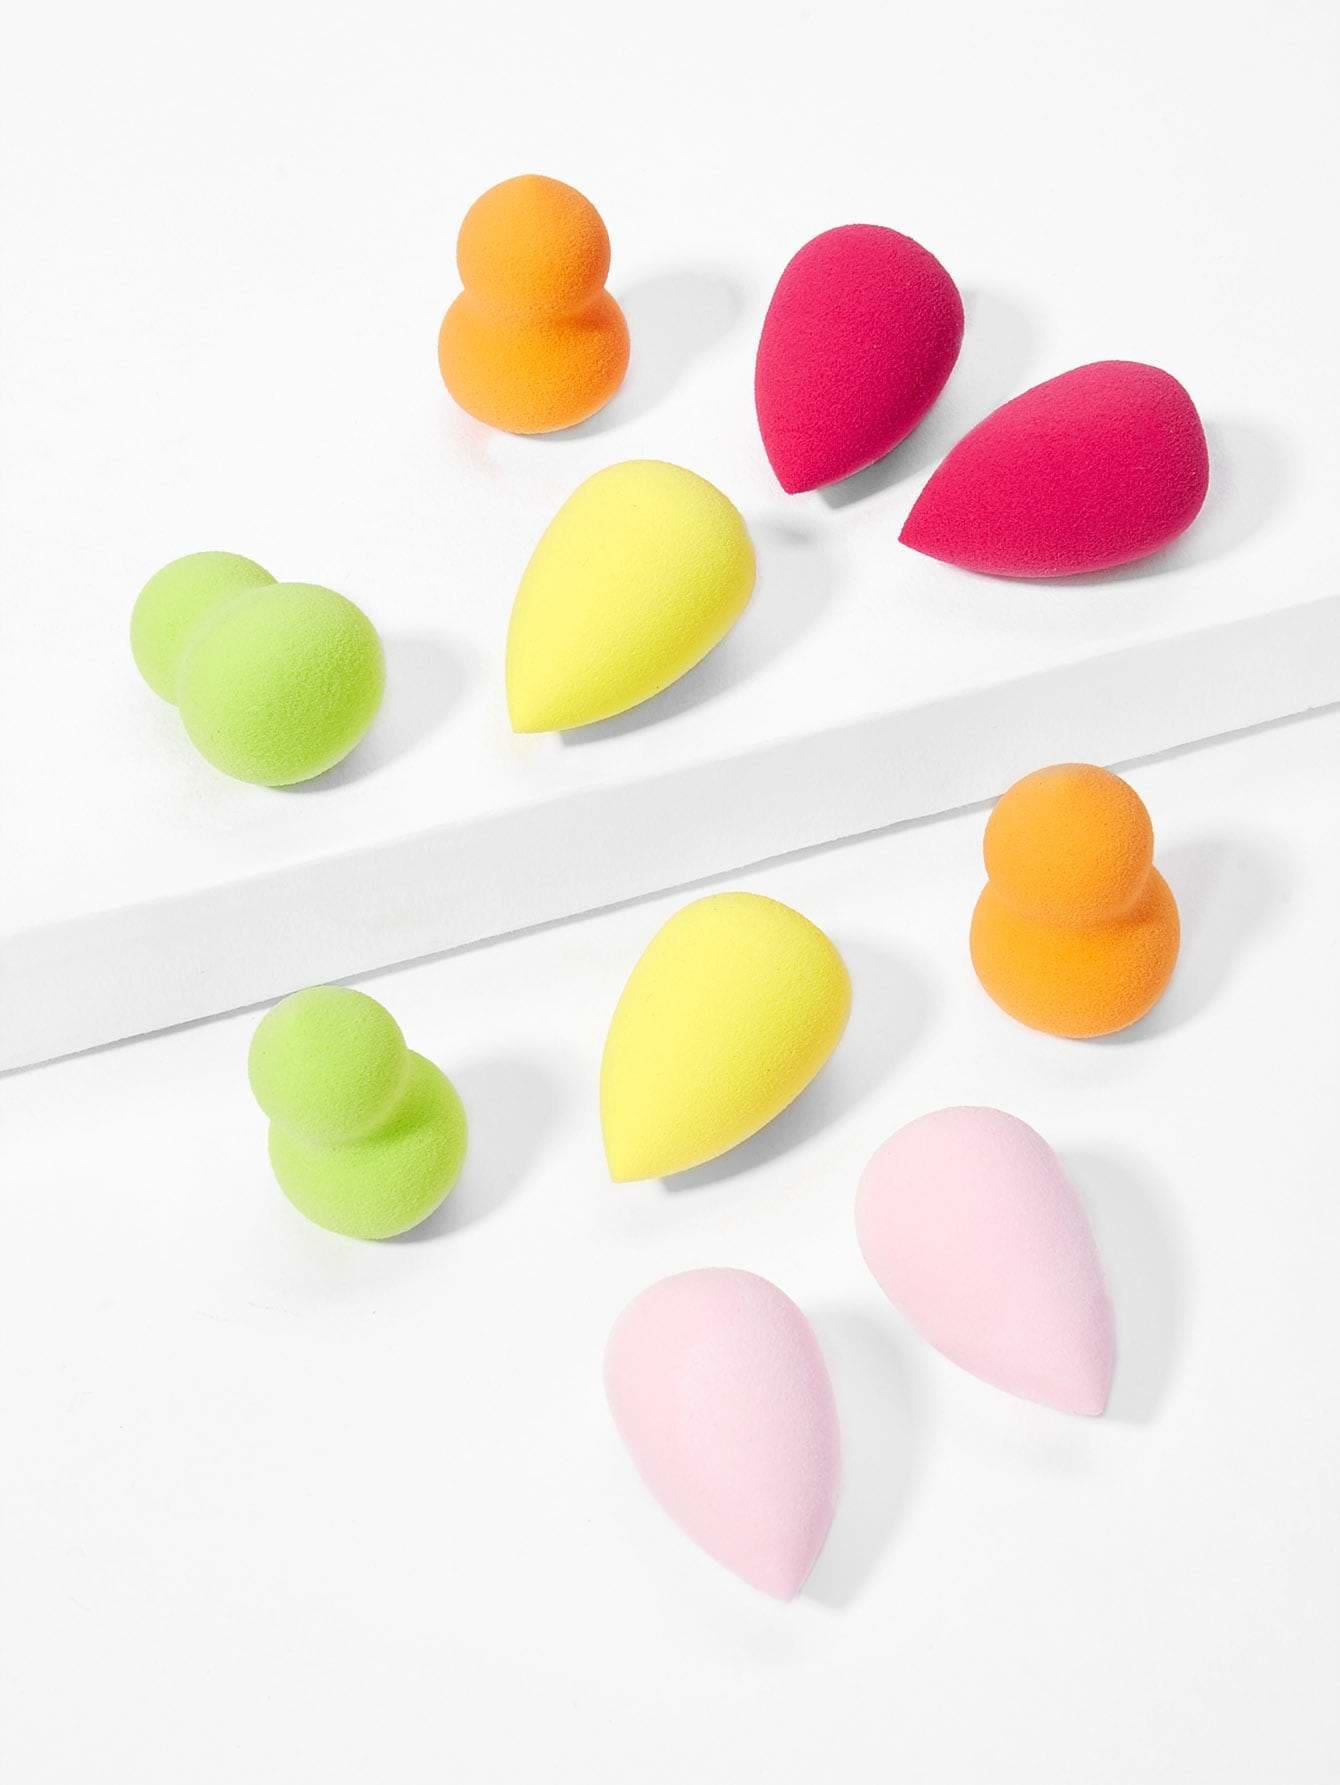 Water-Drop & Gourd Shaped Makeup Sponge 10Pcs - Beauty Tools